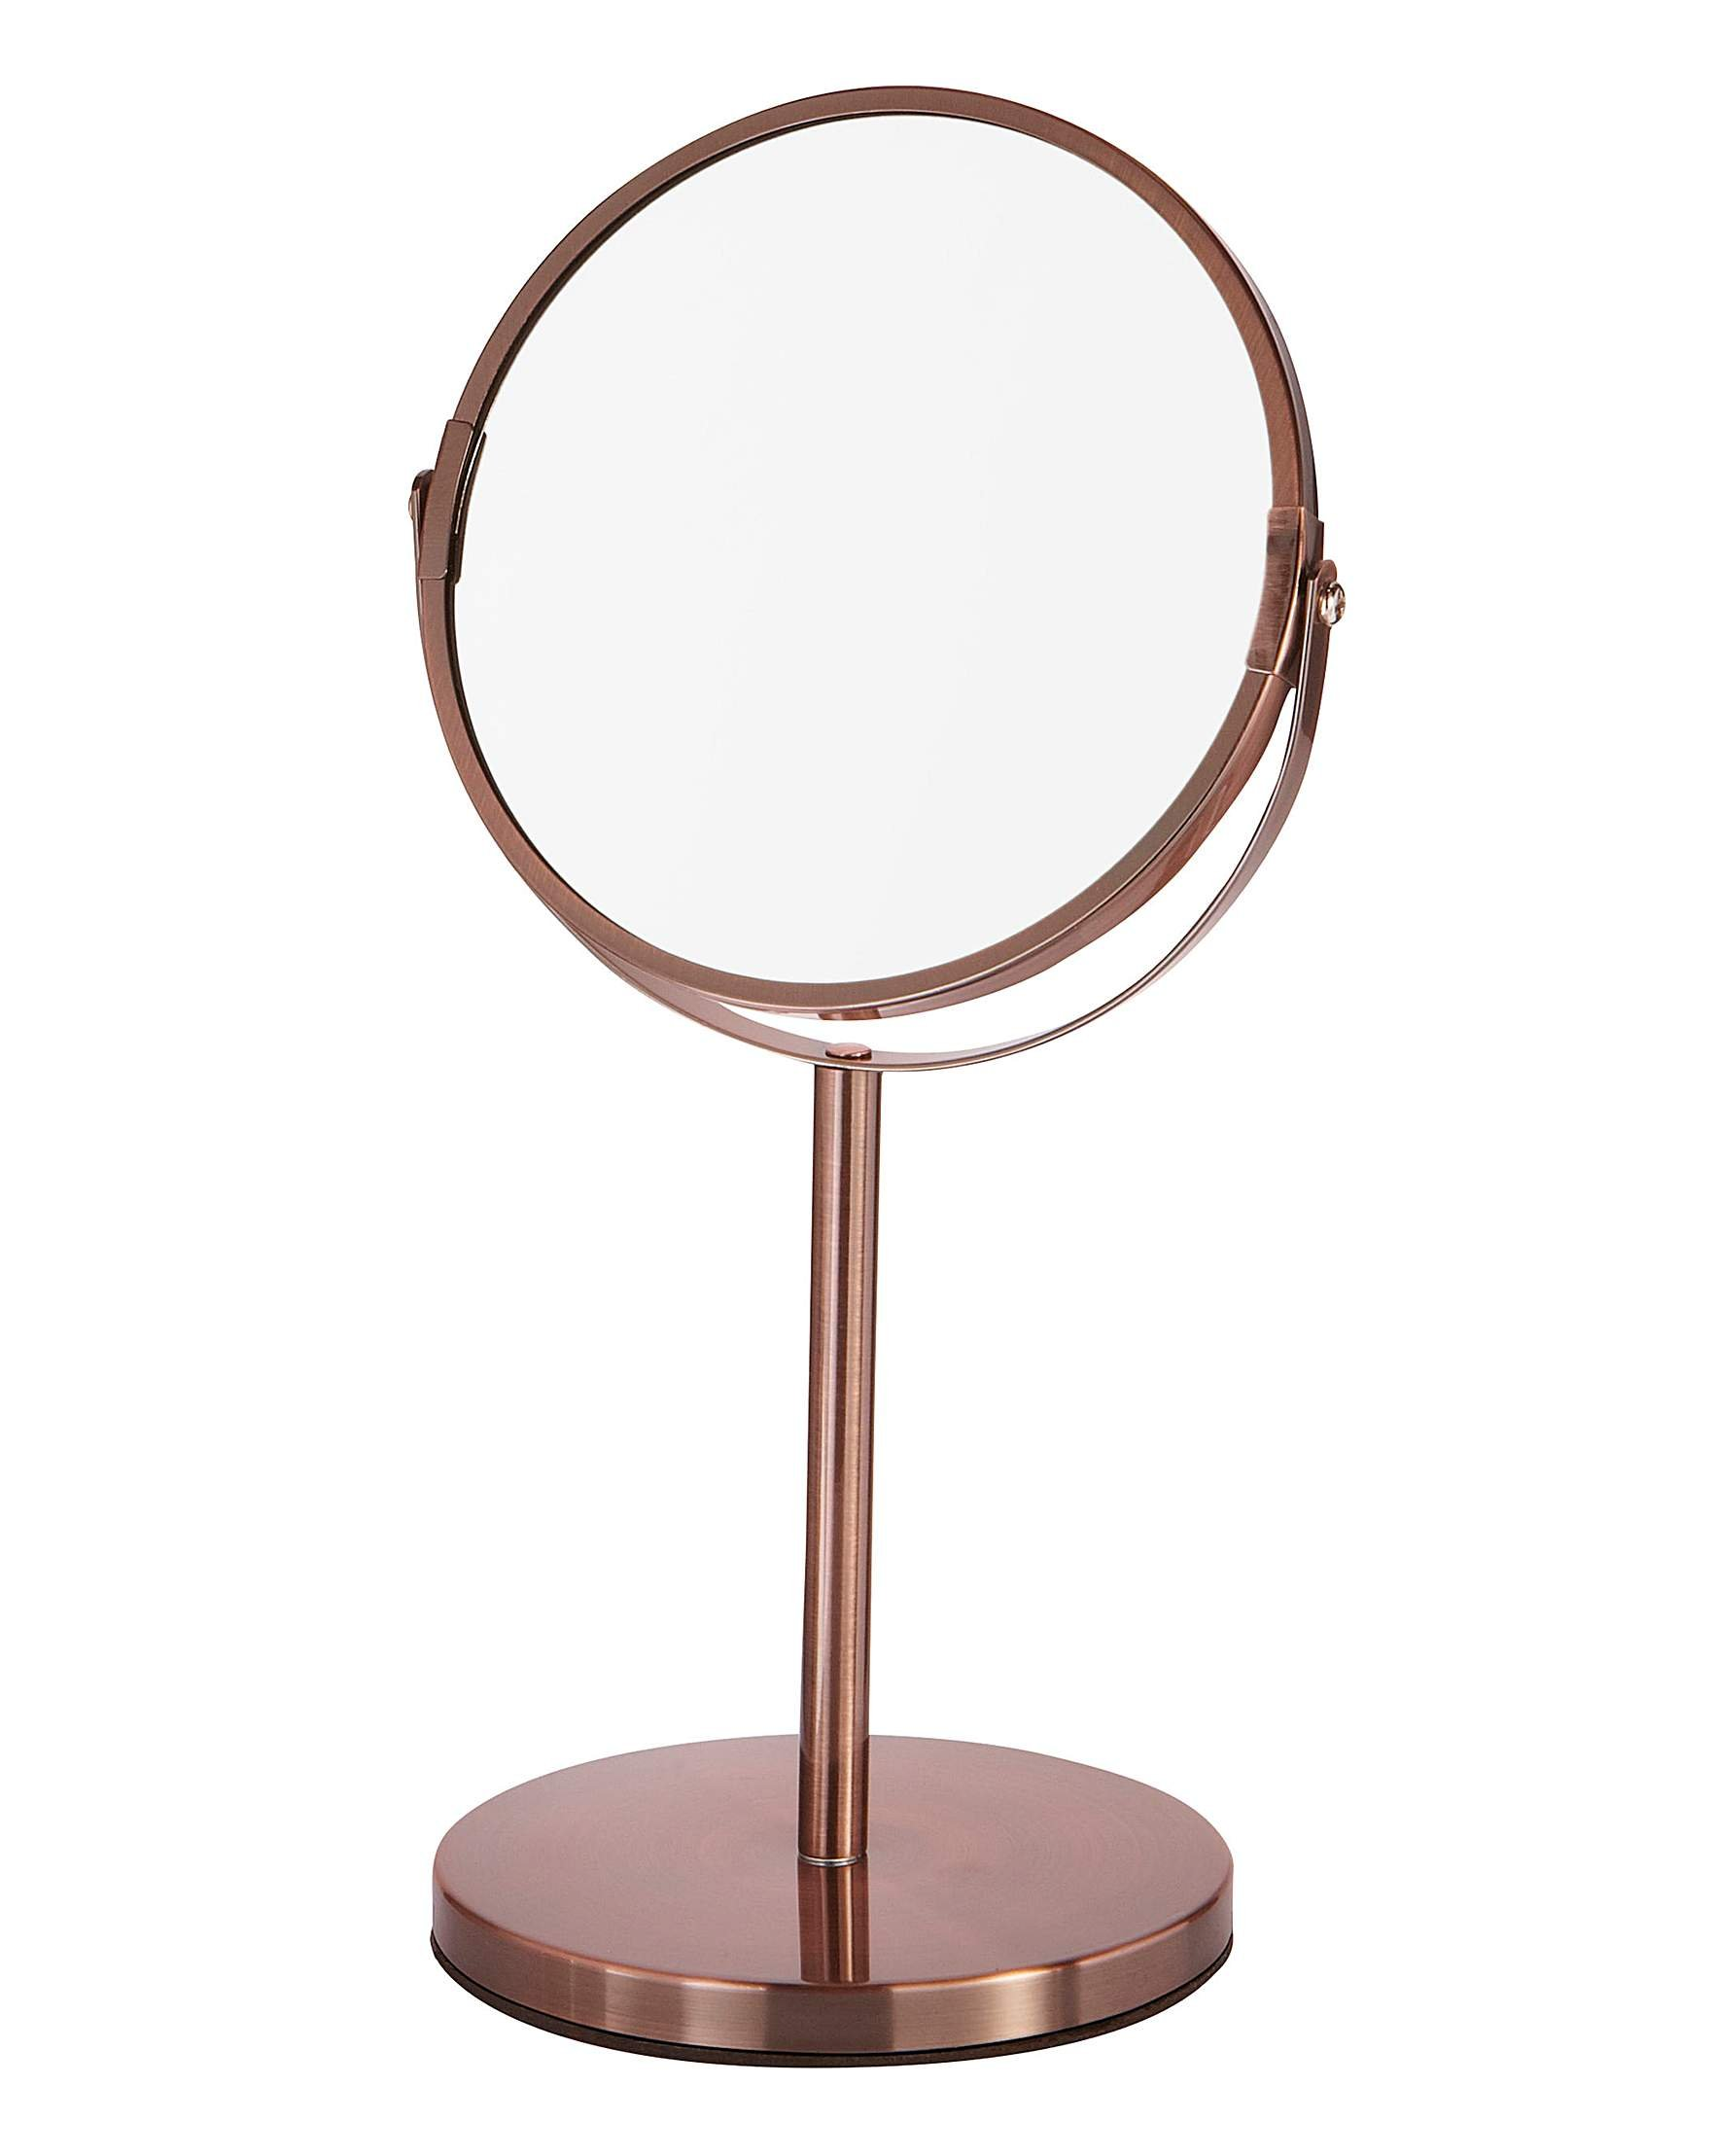 CROWNSTARQI Makeup Mirror 5-inch Tabletop Two-Sided Swivel Vanity Mirror with 3x Magnification, 12.5-inch Height, Bronze Copper Stainless Steel